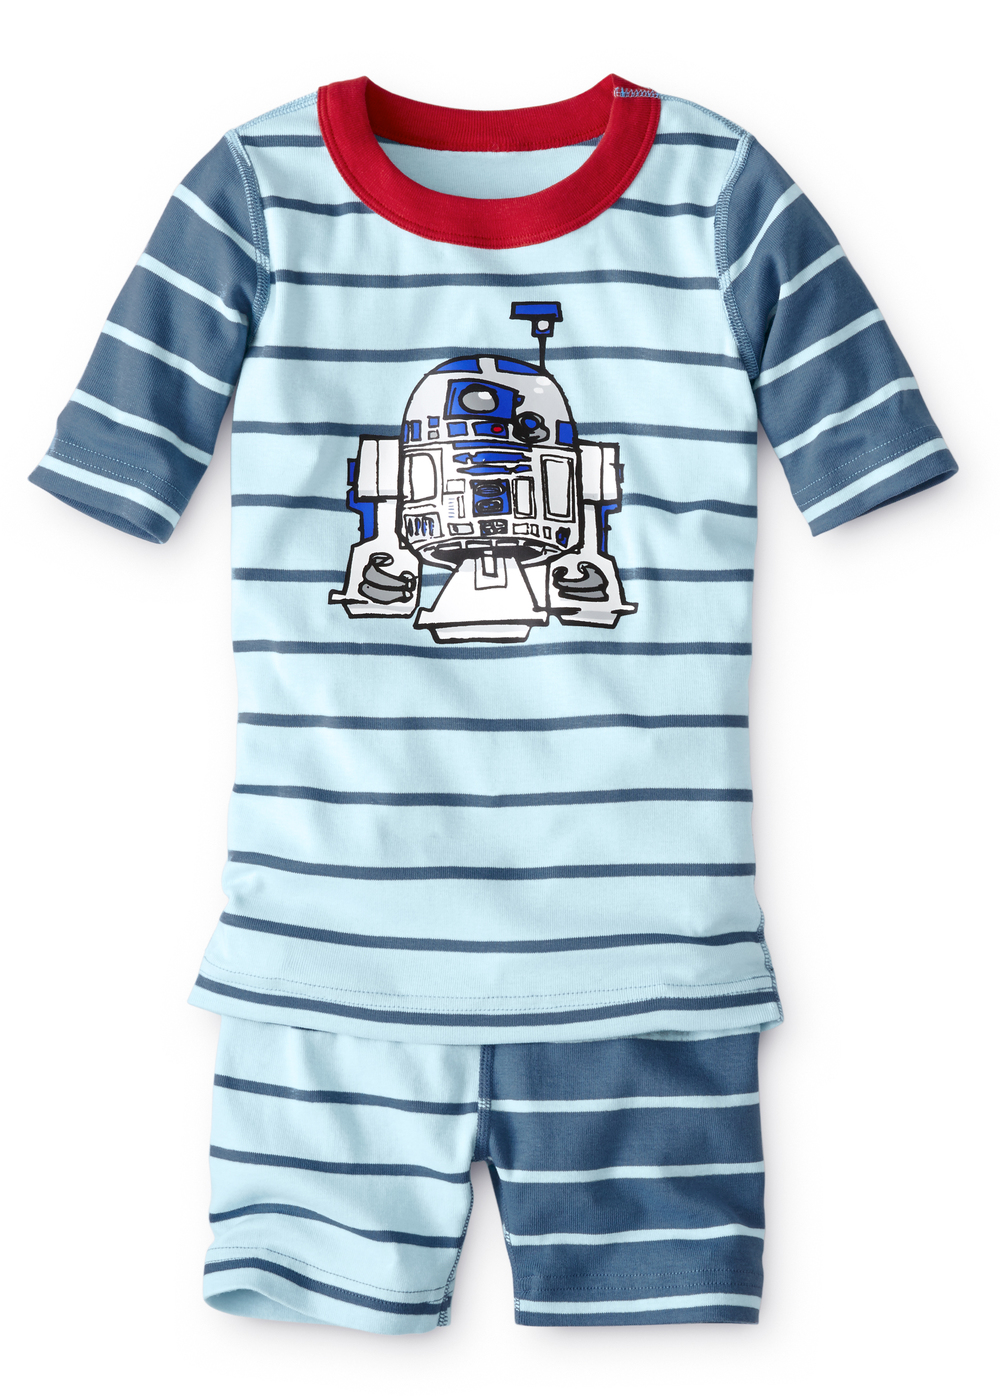 Star Wars Organic Cotton Pajamas